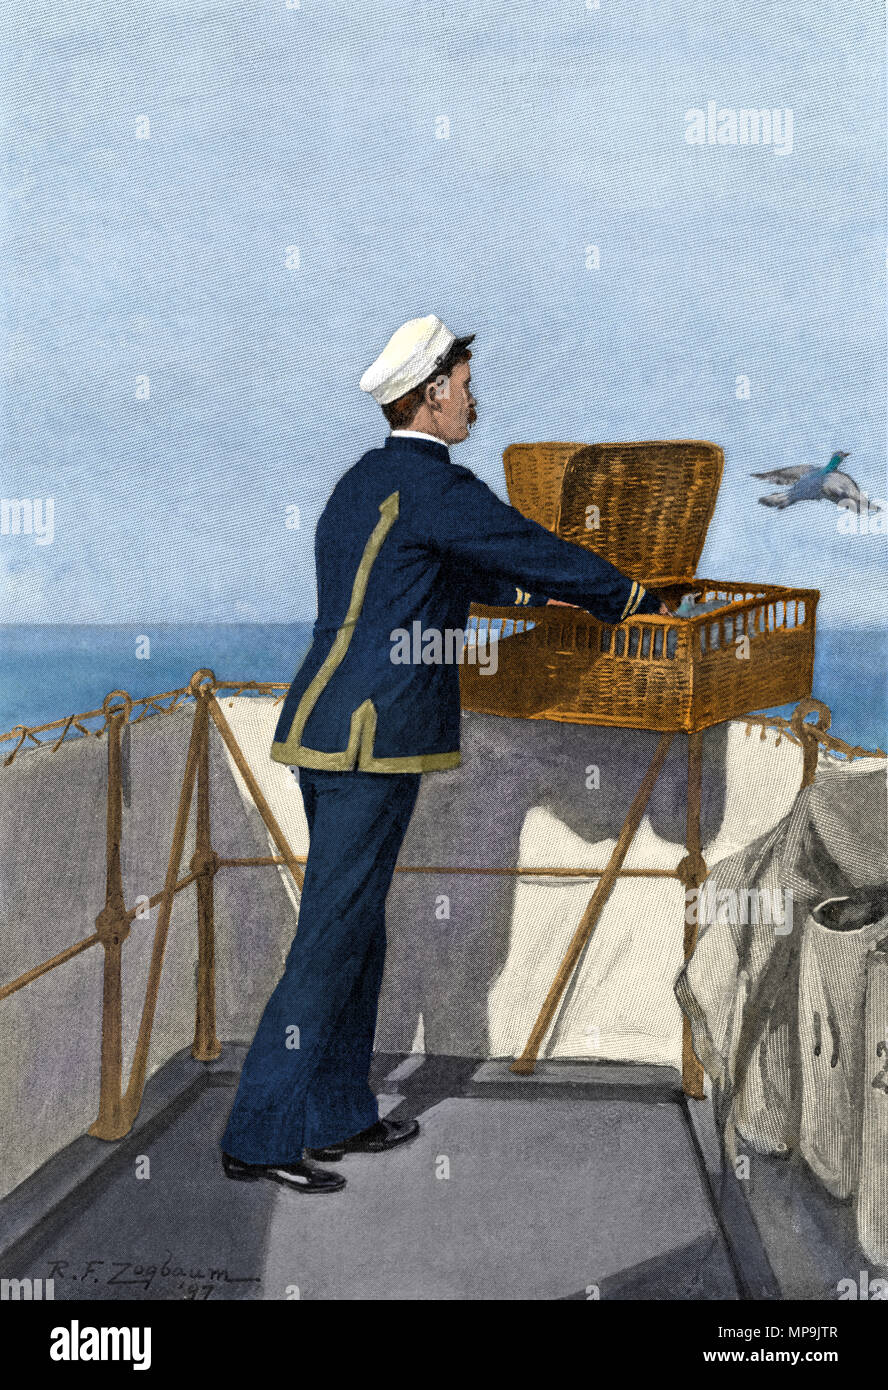 Carrier pigeon released from the USS 'Iowa' with a message for home port, 1897. Digitally colored halftone of an illustration - Stock Image